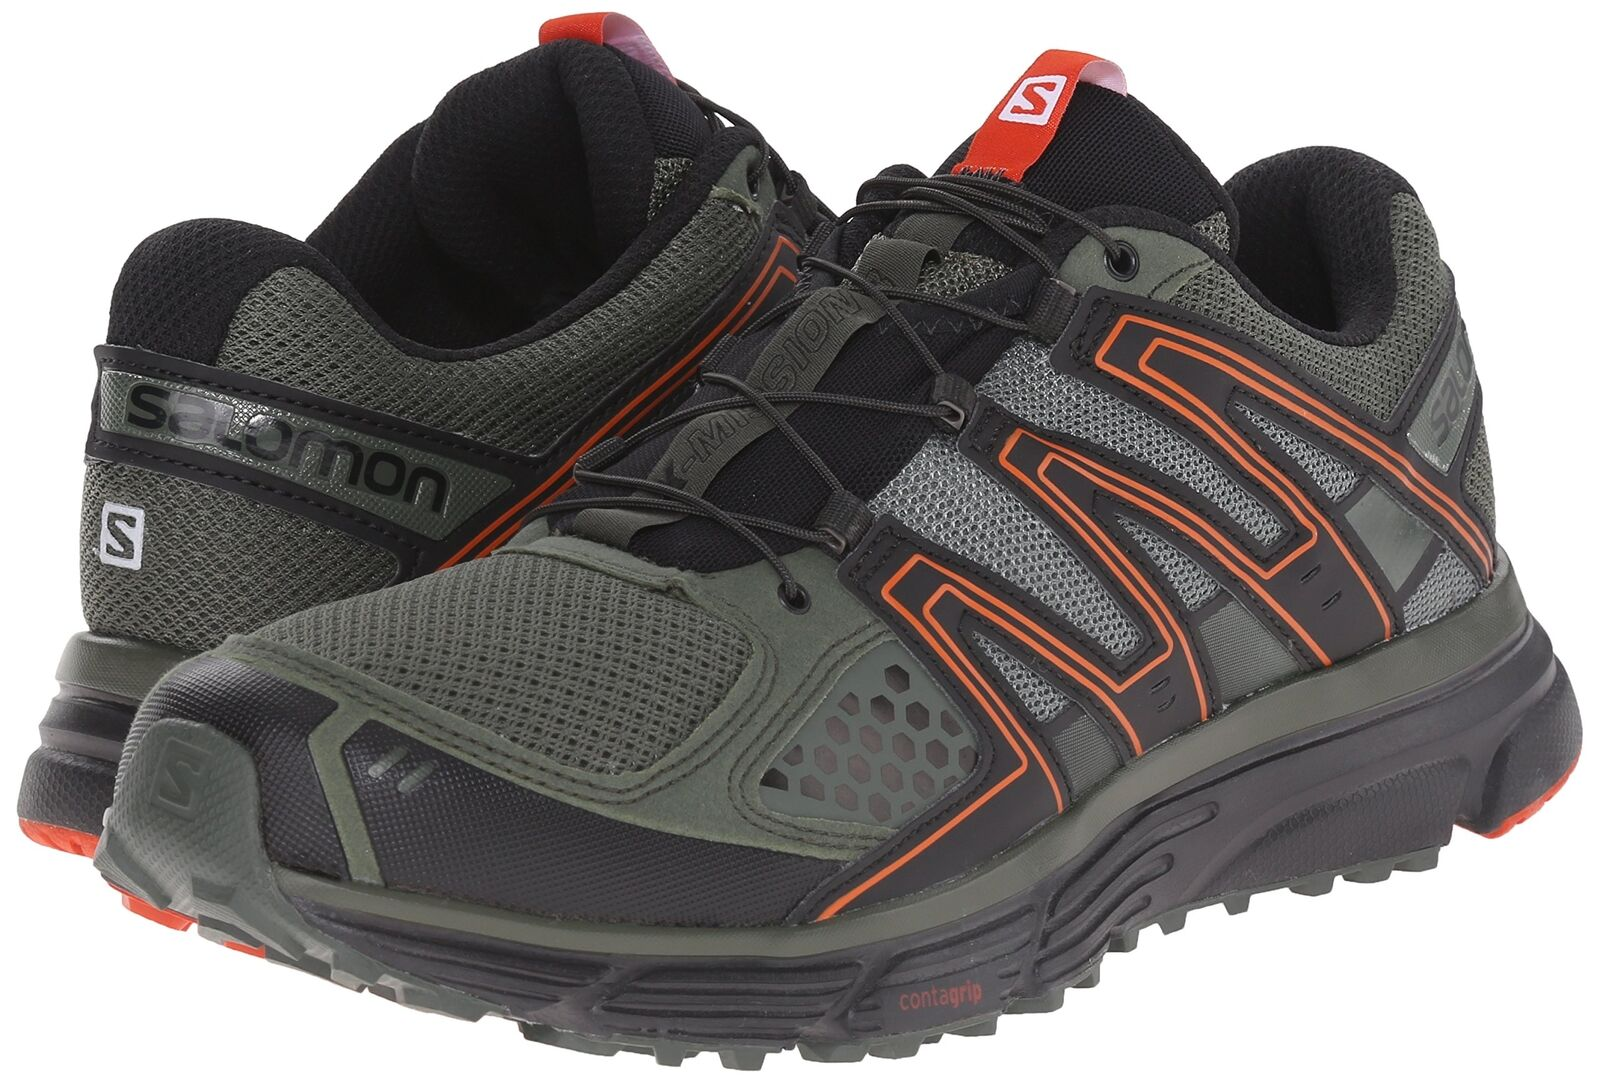 Salomon Men's X-Mission 3 Trail Running shoes Sneakers, Night Forest, 7.5 M US